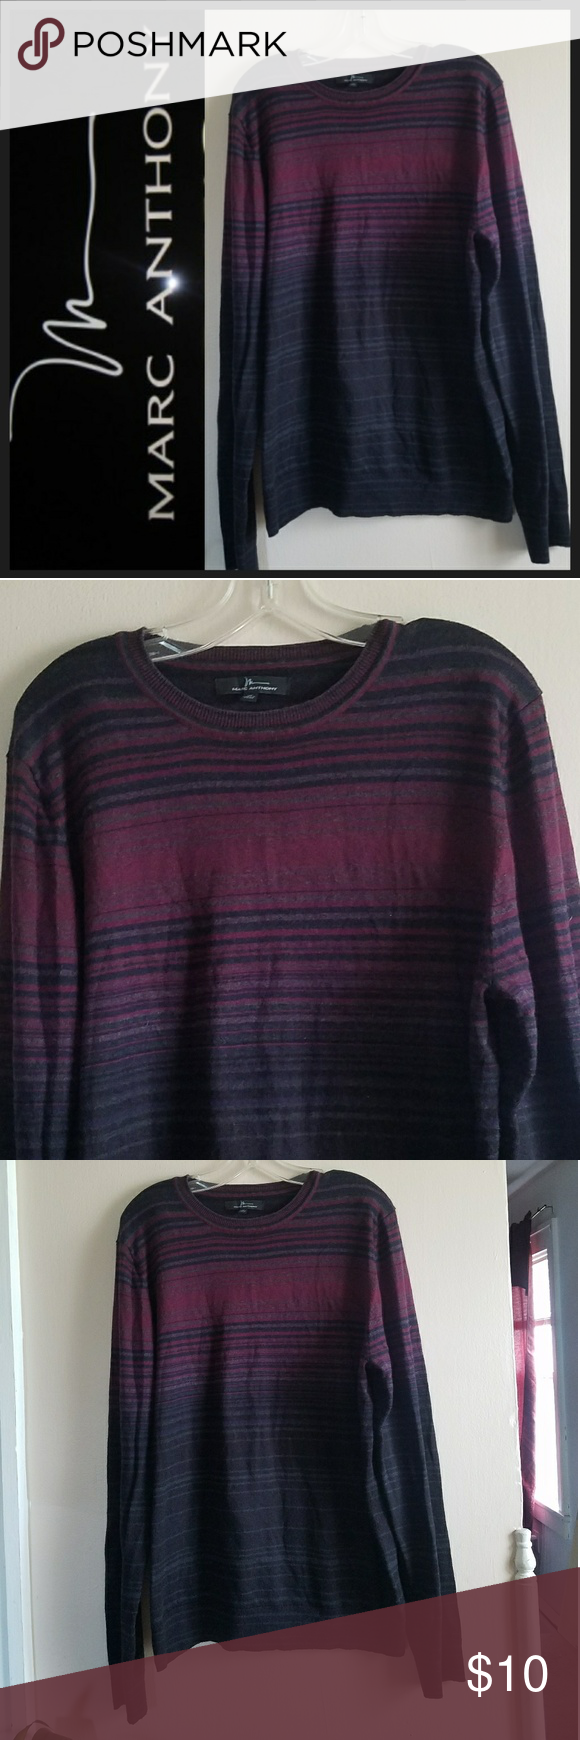 Marc Anthony Lightweight Striped Sweater Marc Anthony Size XL Crew Neck Sweater.Deep shades of fushia, purple, & black in this lighweight sweater. Casual yet sexy! Great condition. Cotton, Cashmere & Wool Mix. Marc Anthony Sweaters Crewneck